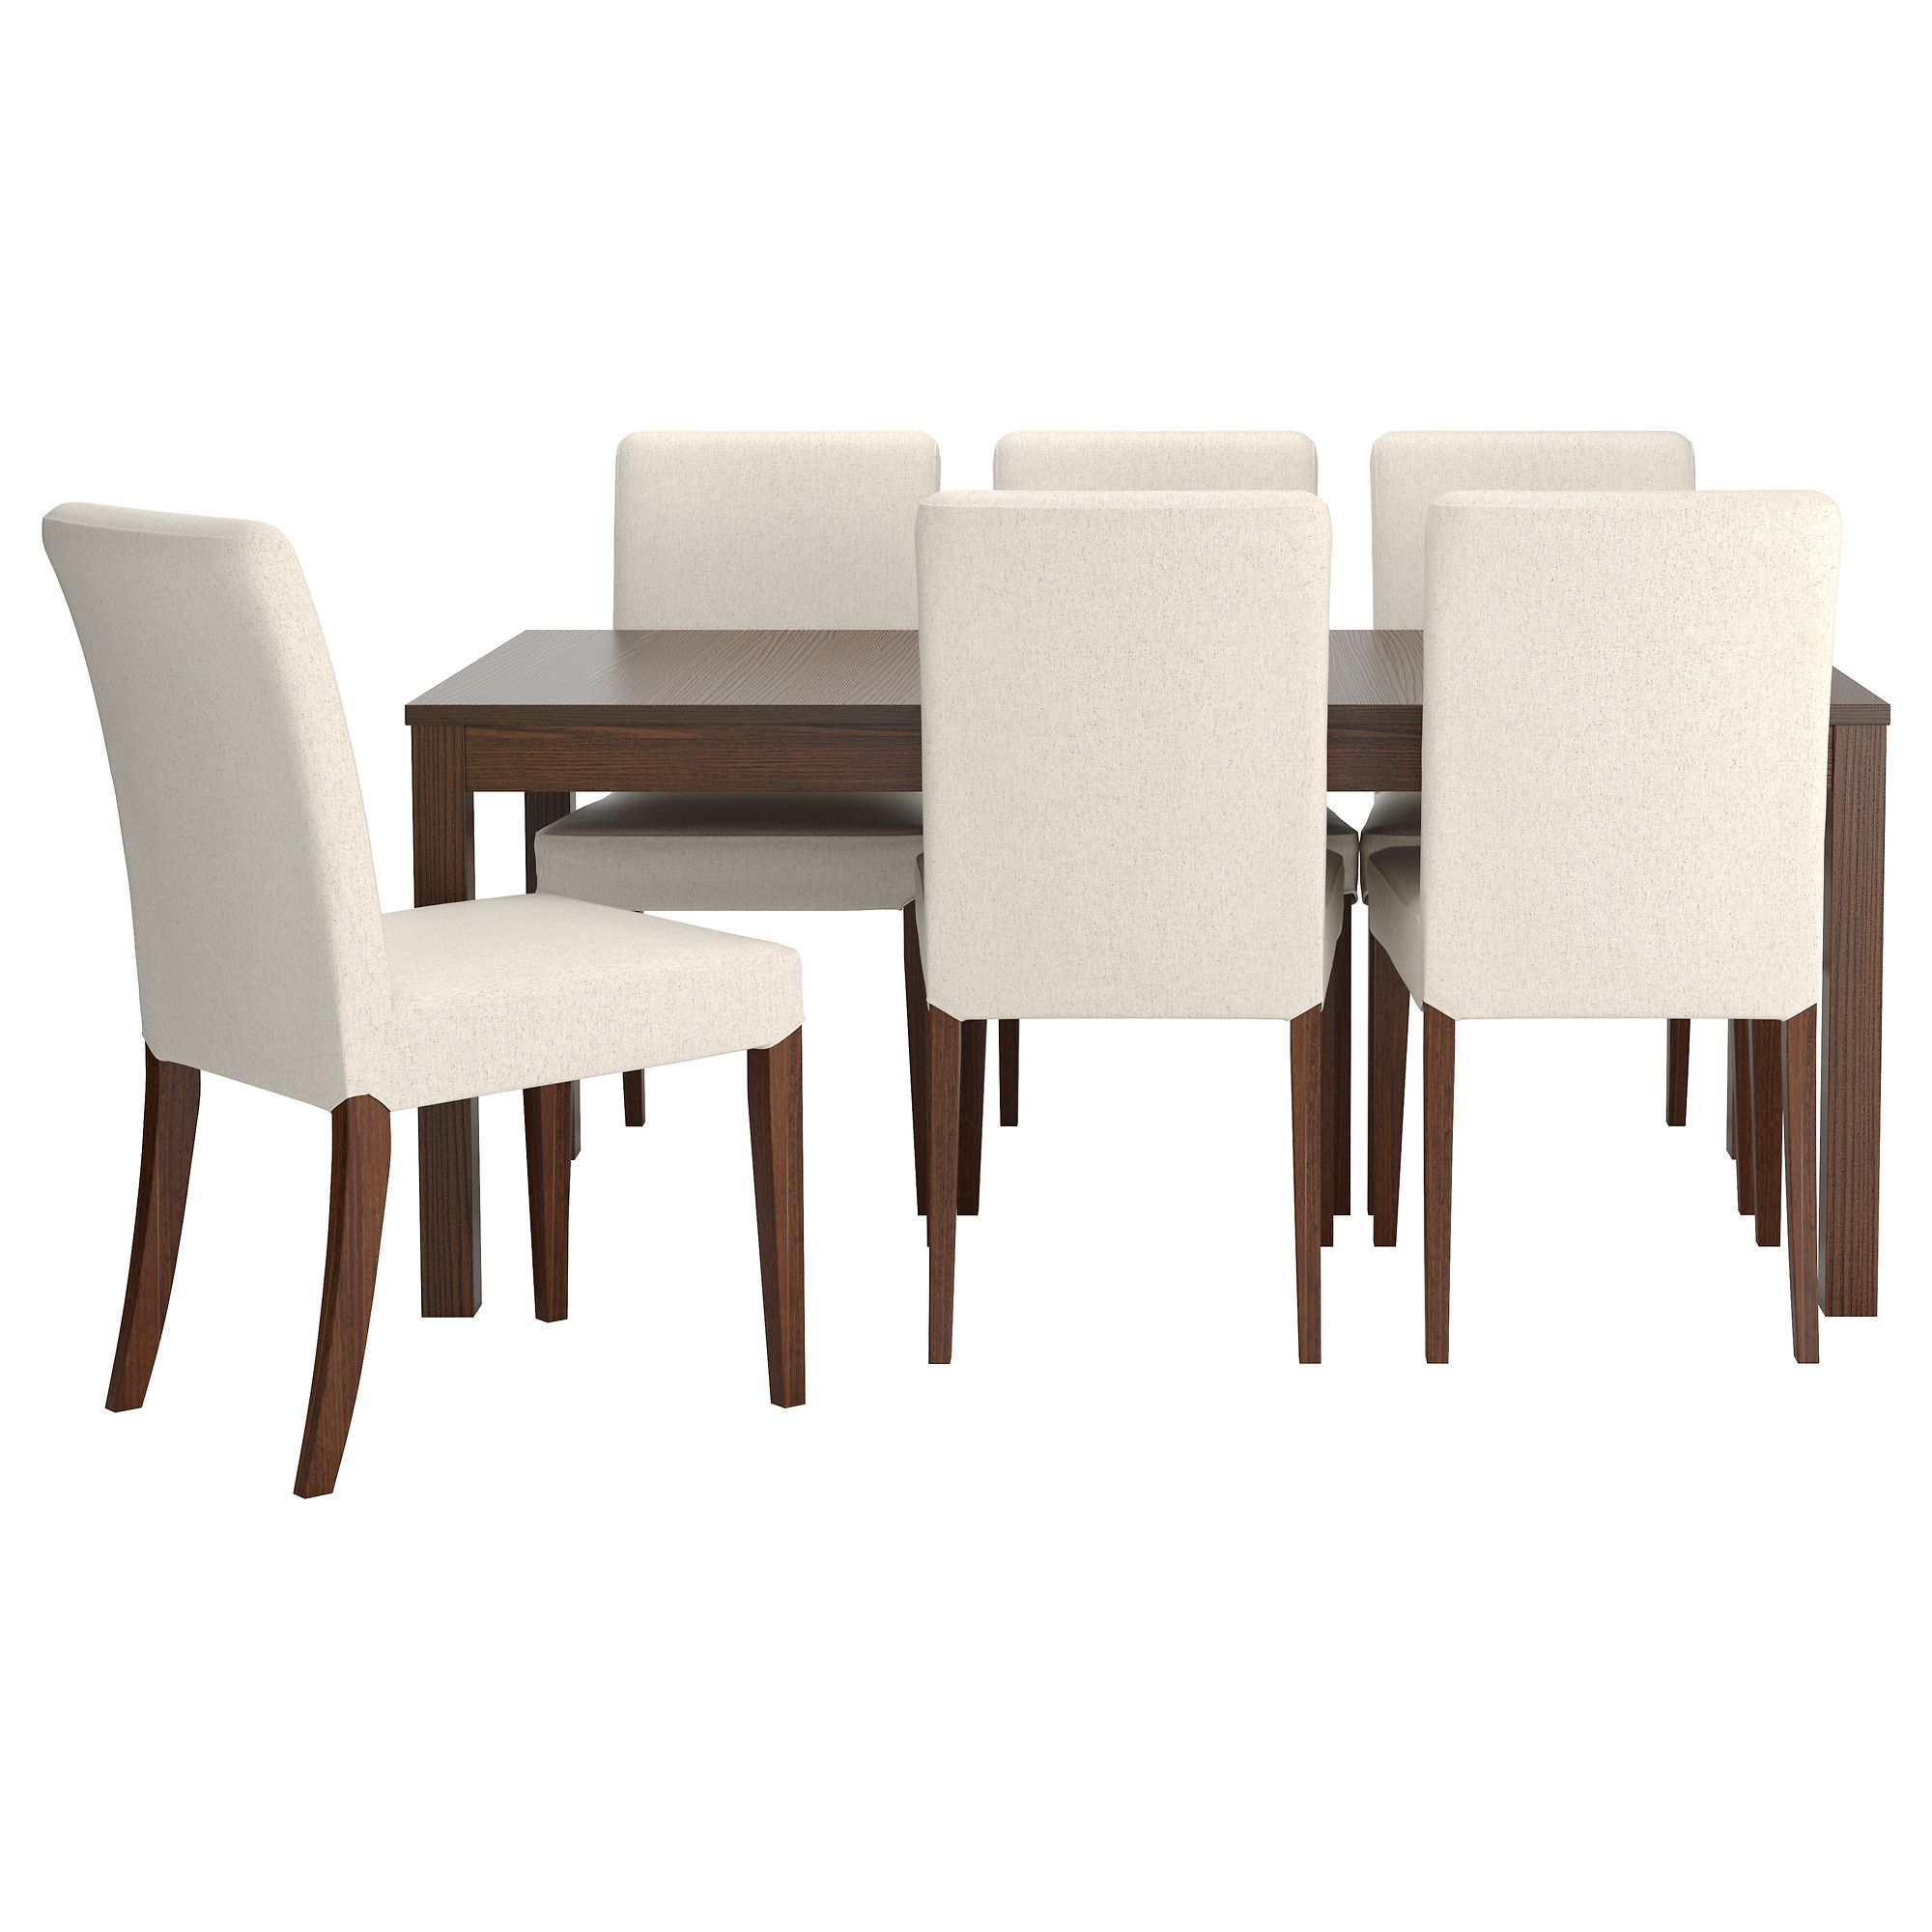 Or This Table And Chairs Bjursta  Henriksdal Table And 6 Chairs Impressive Small Dining Room Sets Ikea Design Decoration